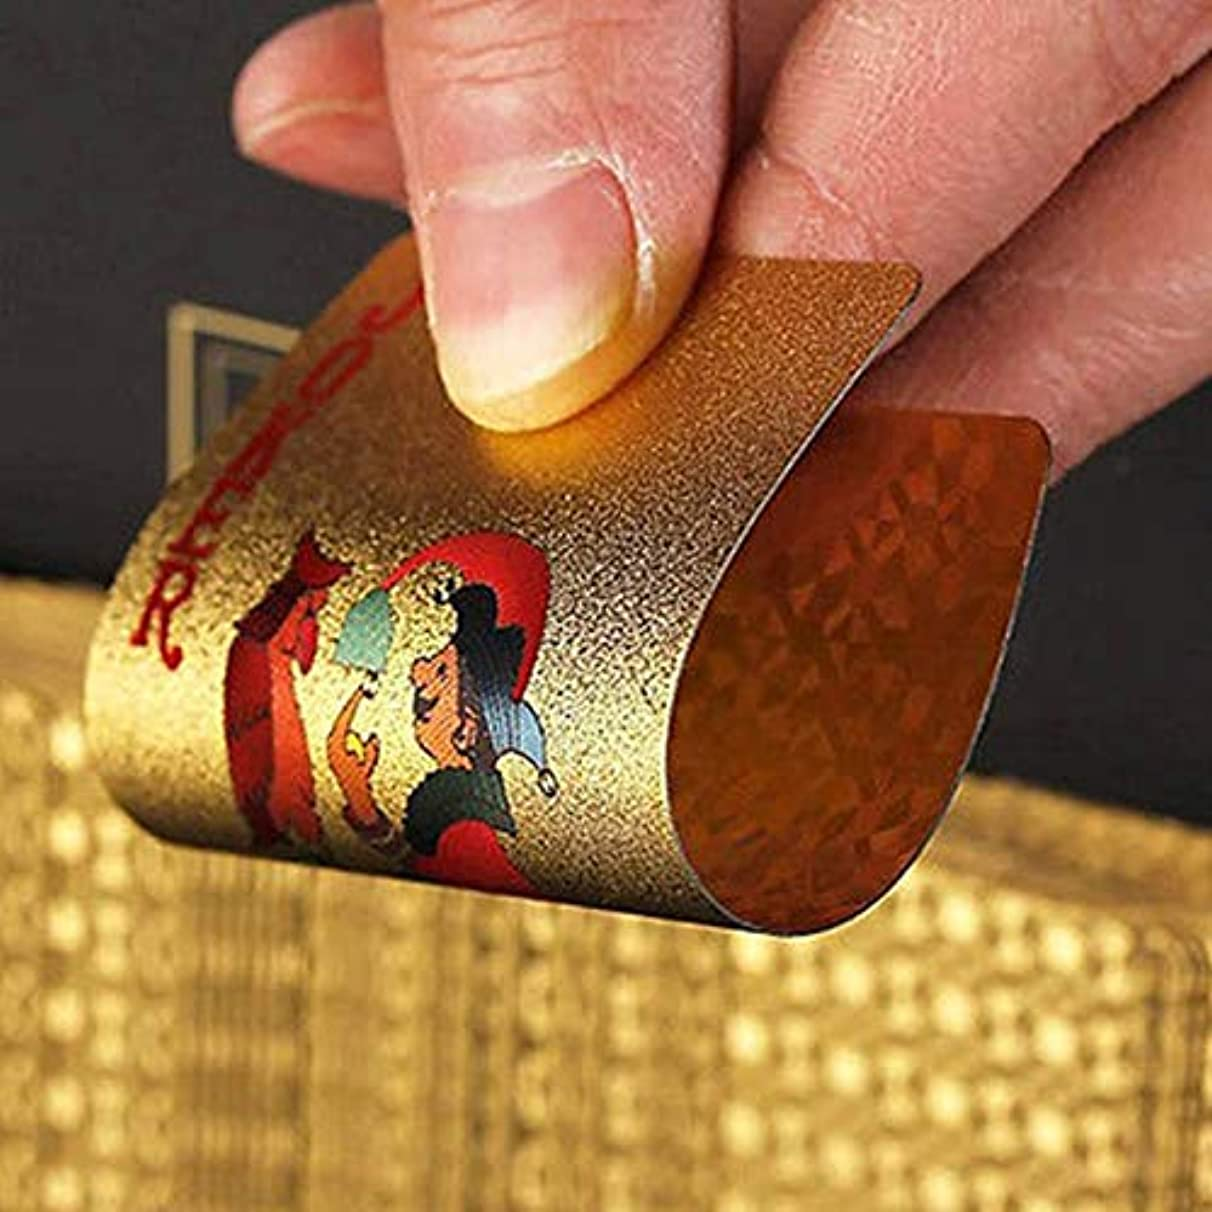 Party DIY Decorations - Christmas Table Games Certified Pure 24k Carat Novelty Gold Foil Plated Poker Playing Cards W 52 2 - Protection Notebook Size Gold Reader Cardboard Storage Wallet